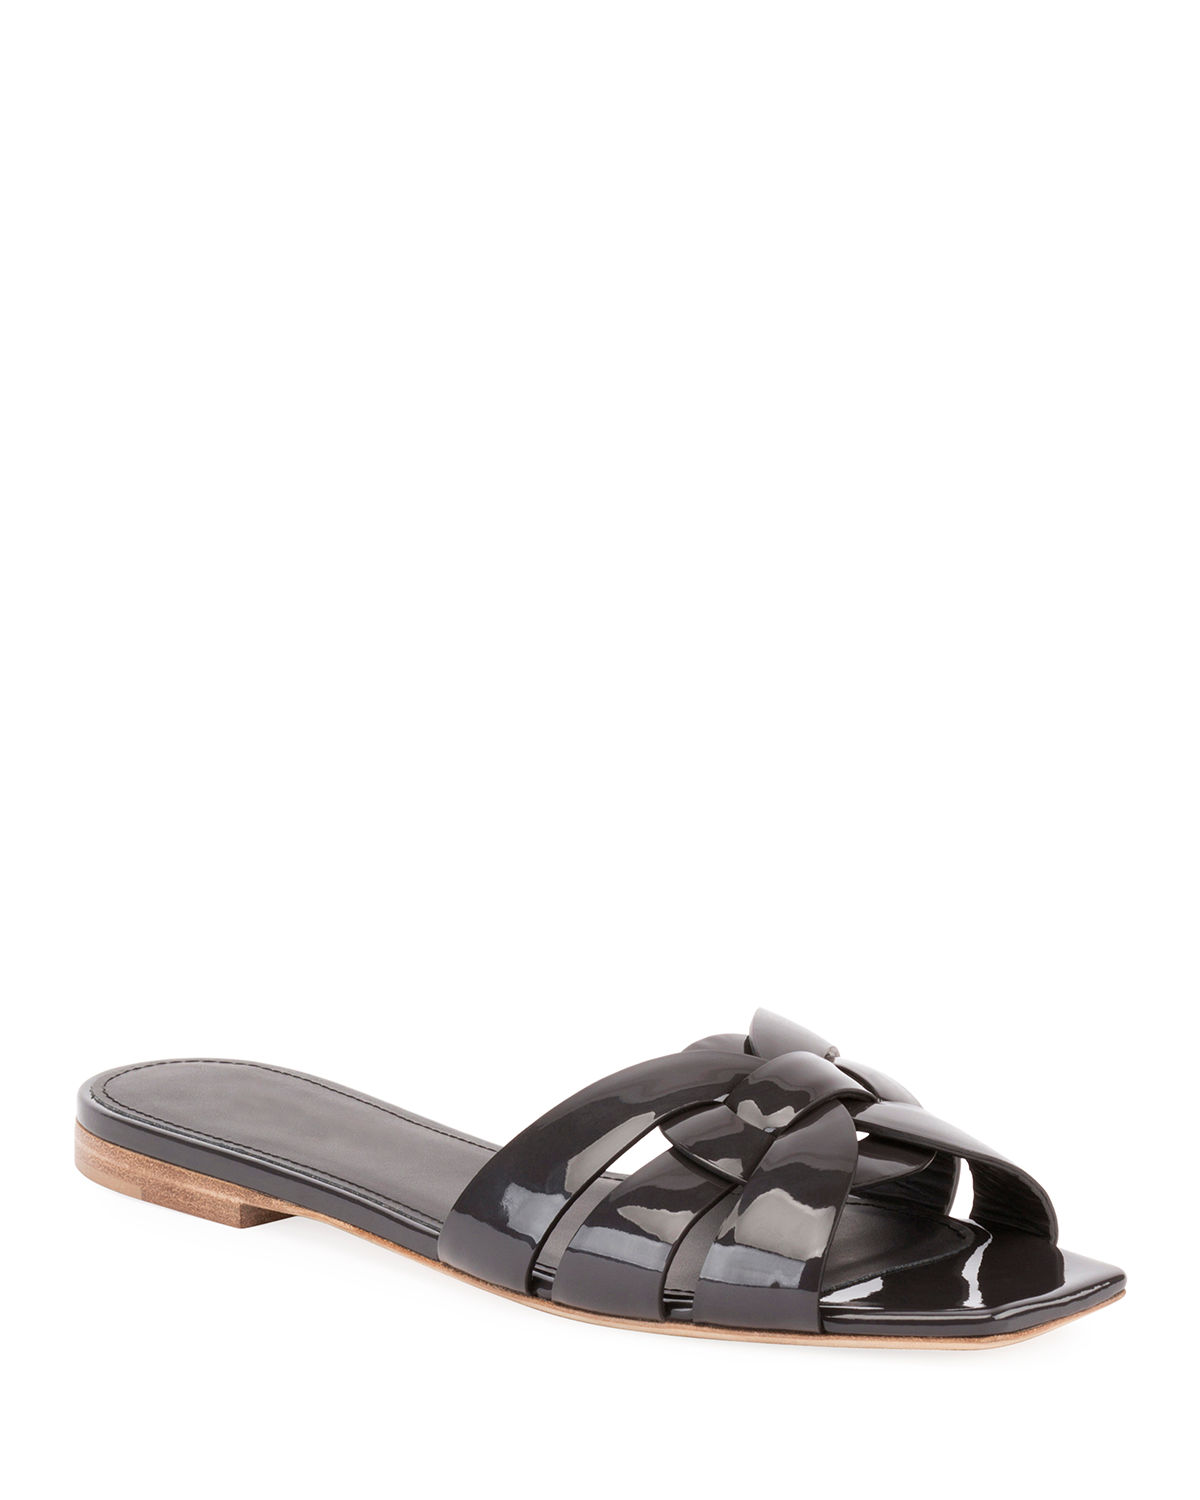 1546c92a2 Saint Laurent Tribute Patent Leather Flat Slide Sandals